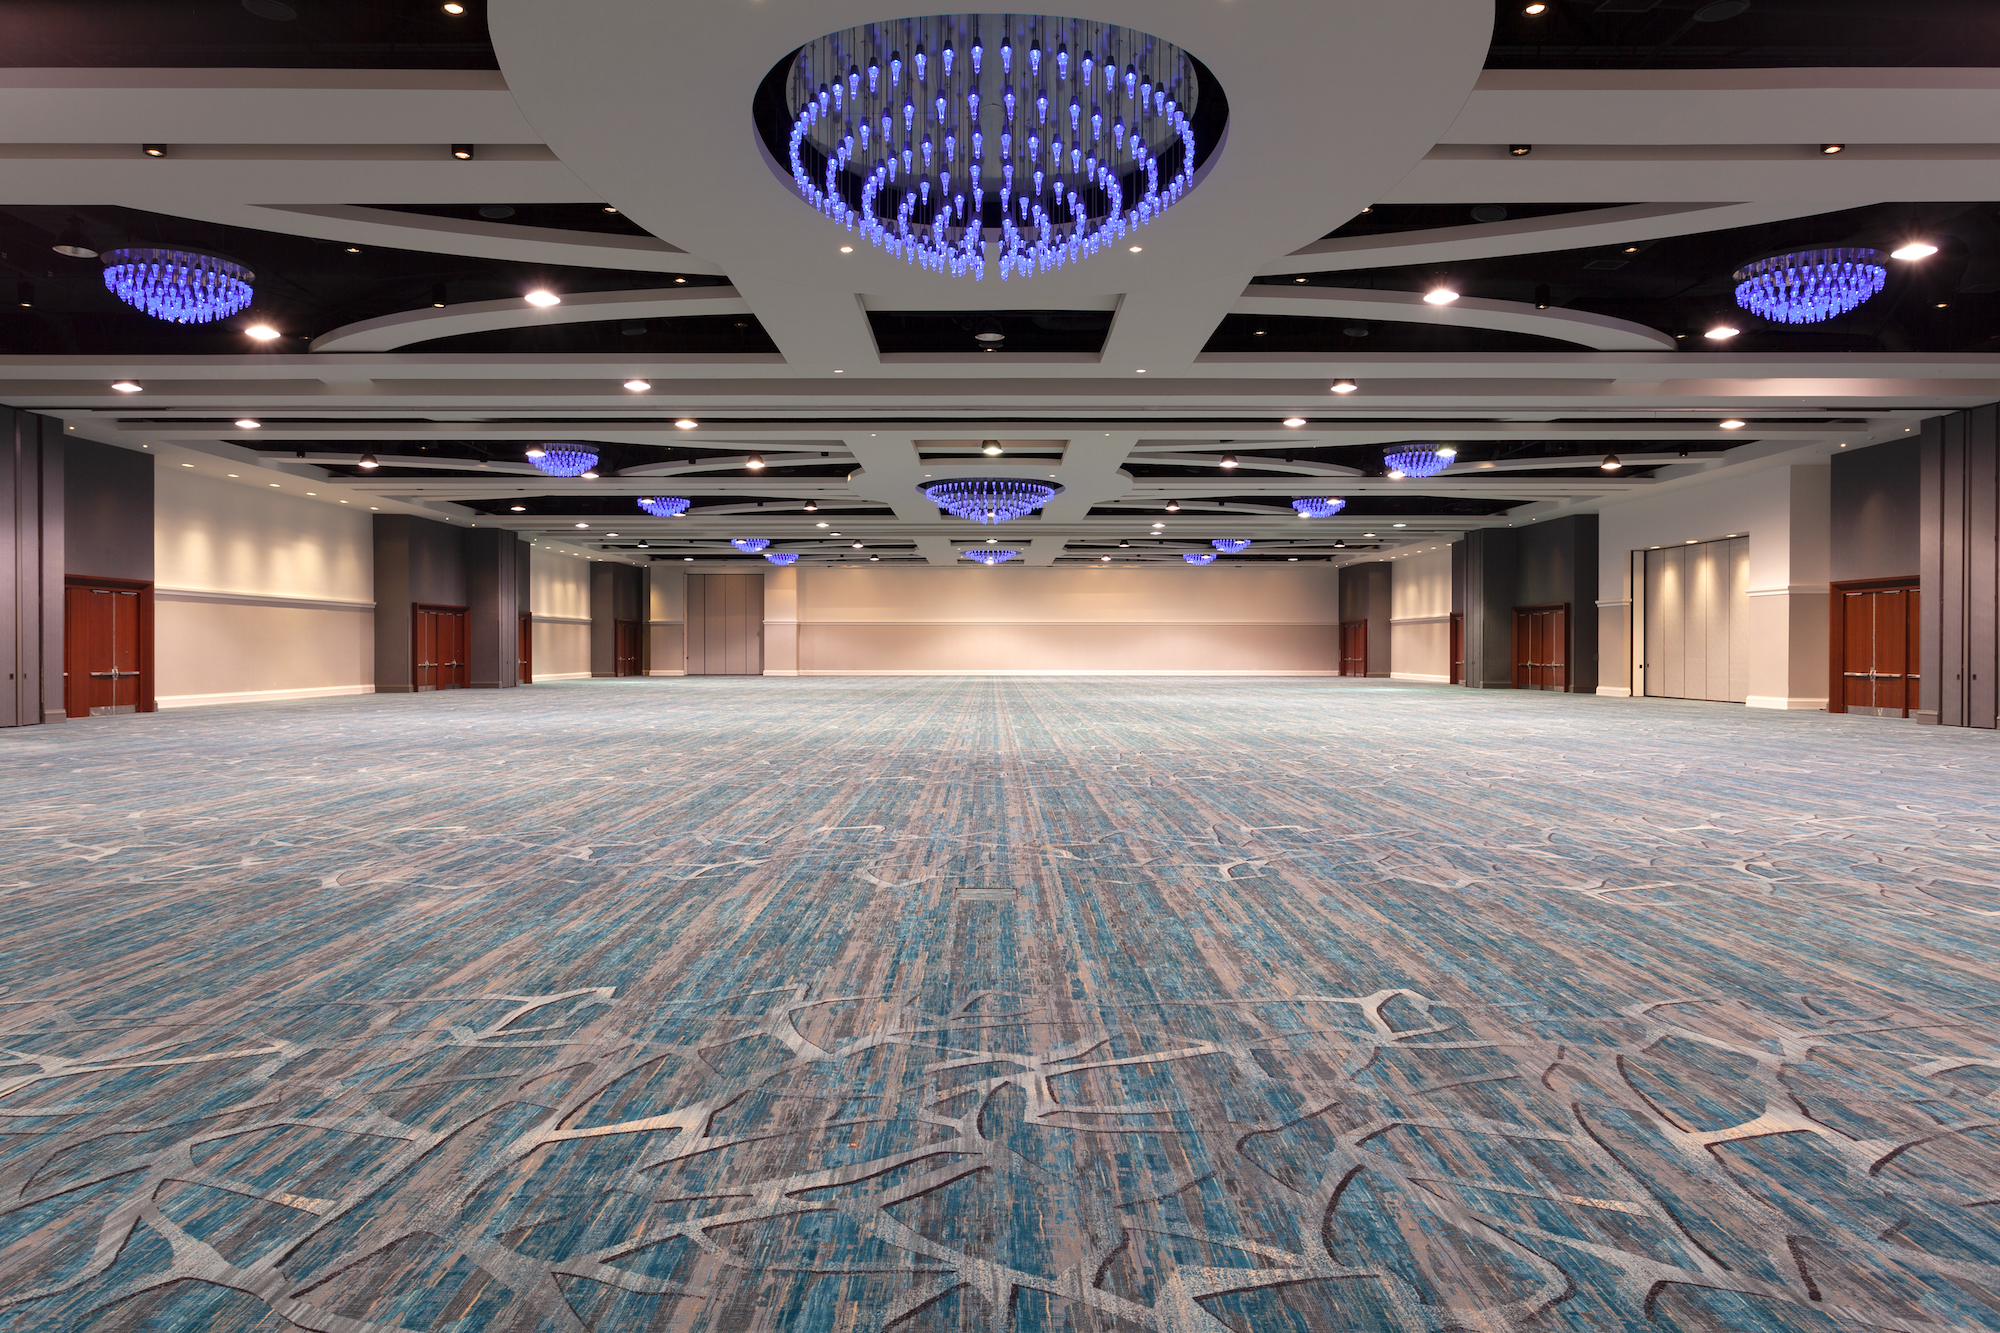 Orlando_world_ballroom.jpg